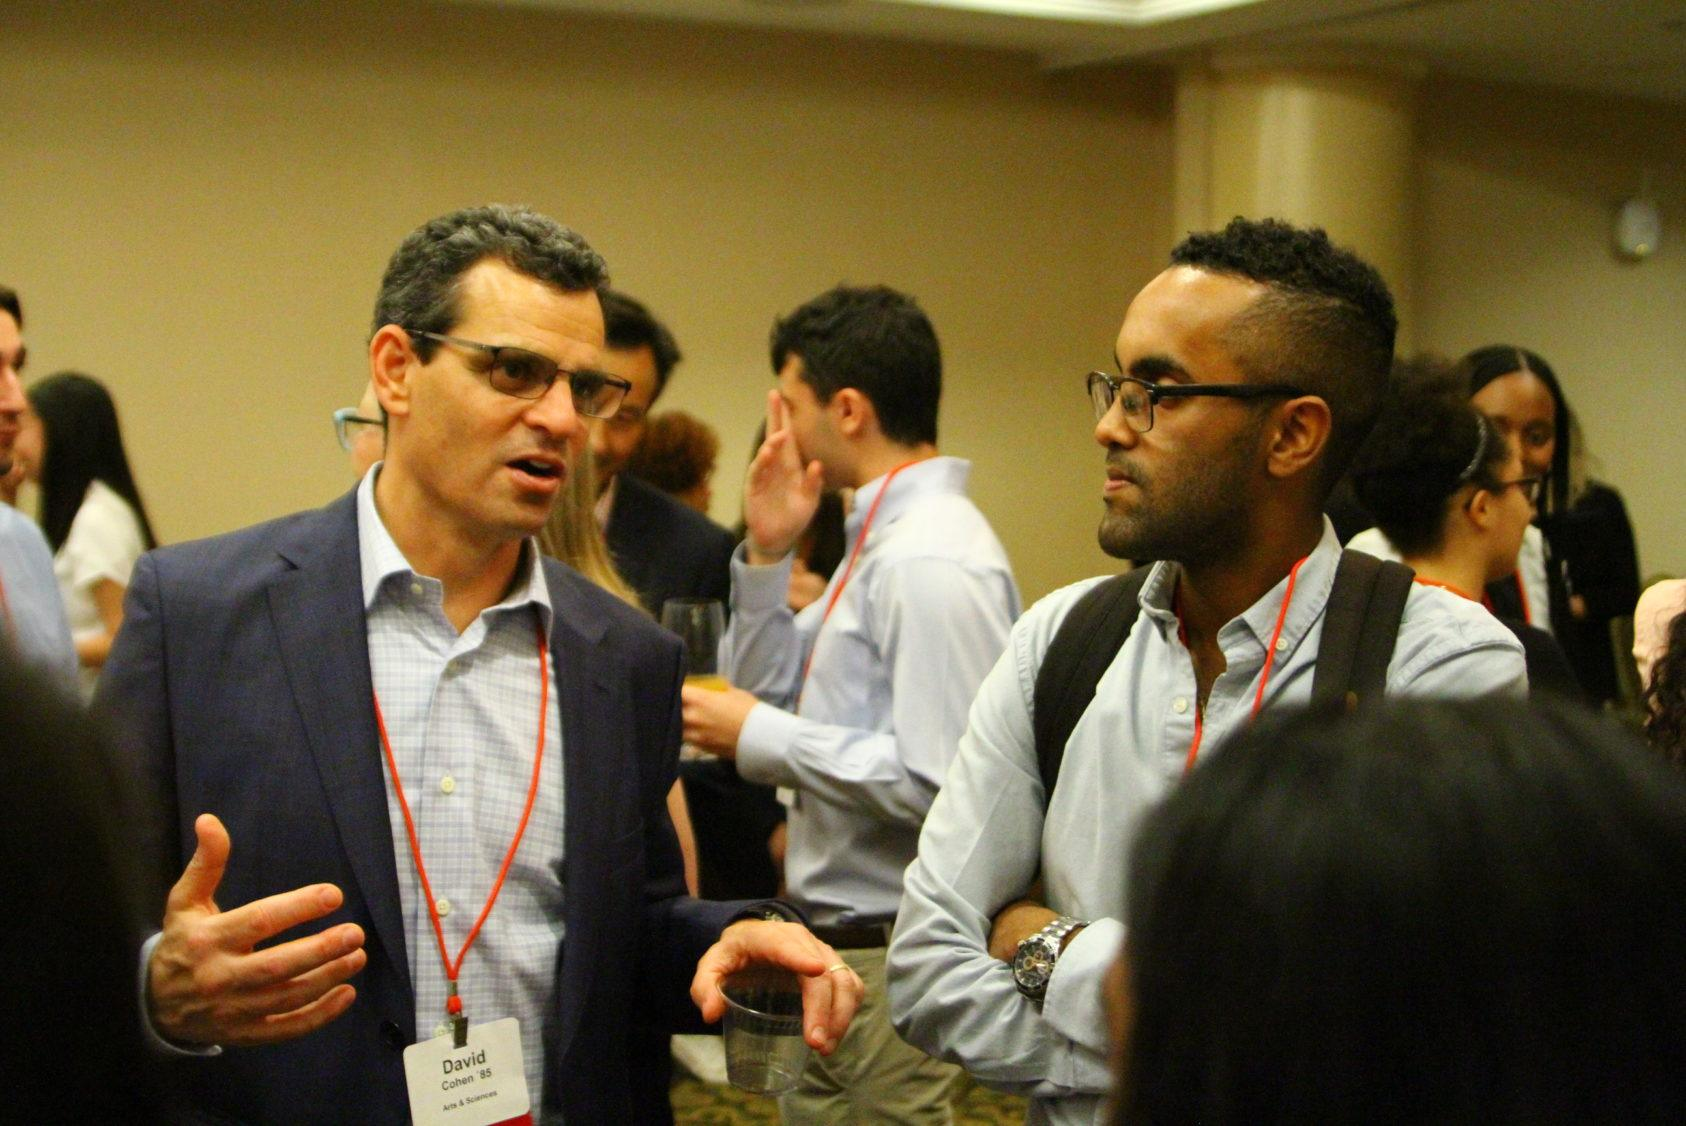 David Cohen, Cornell trustee, networking with students